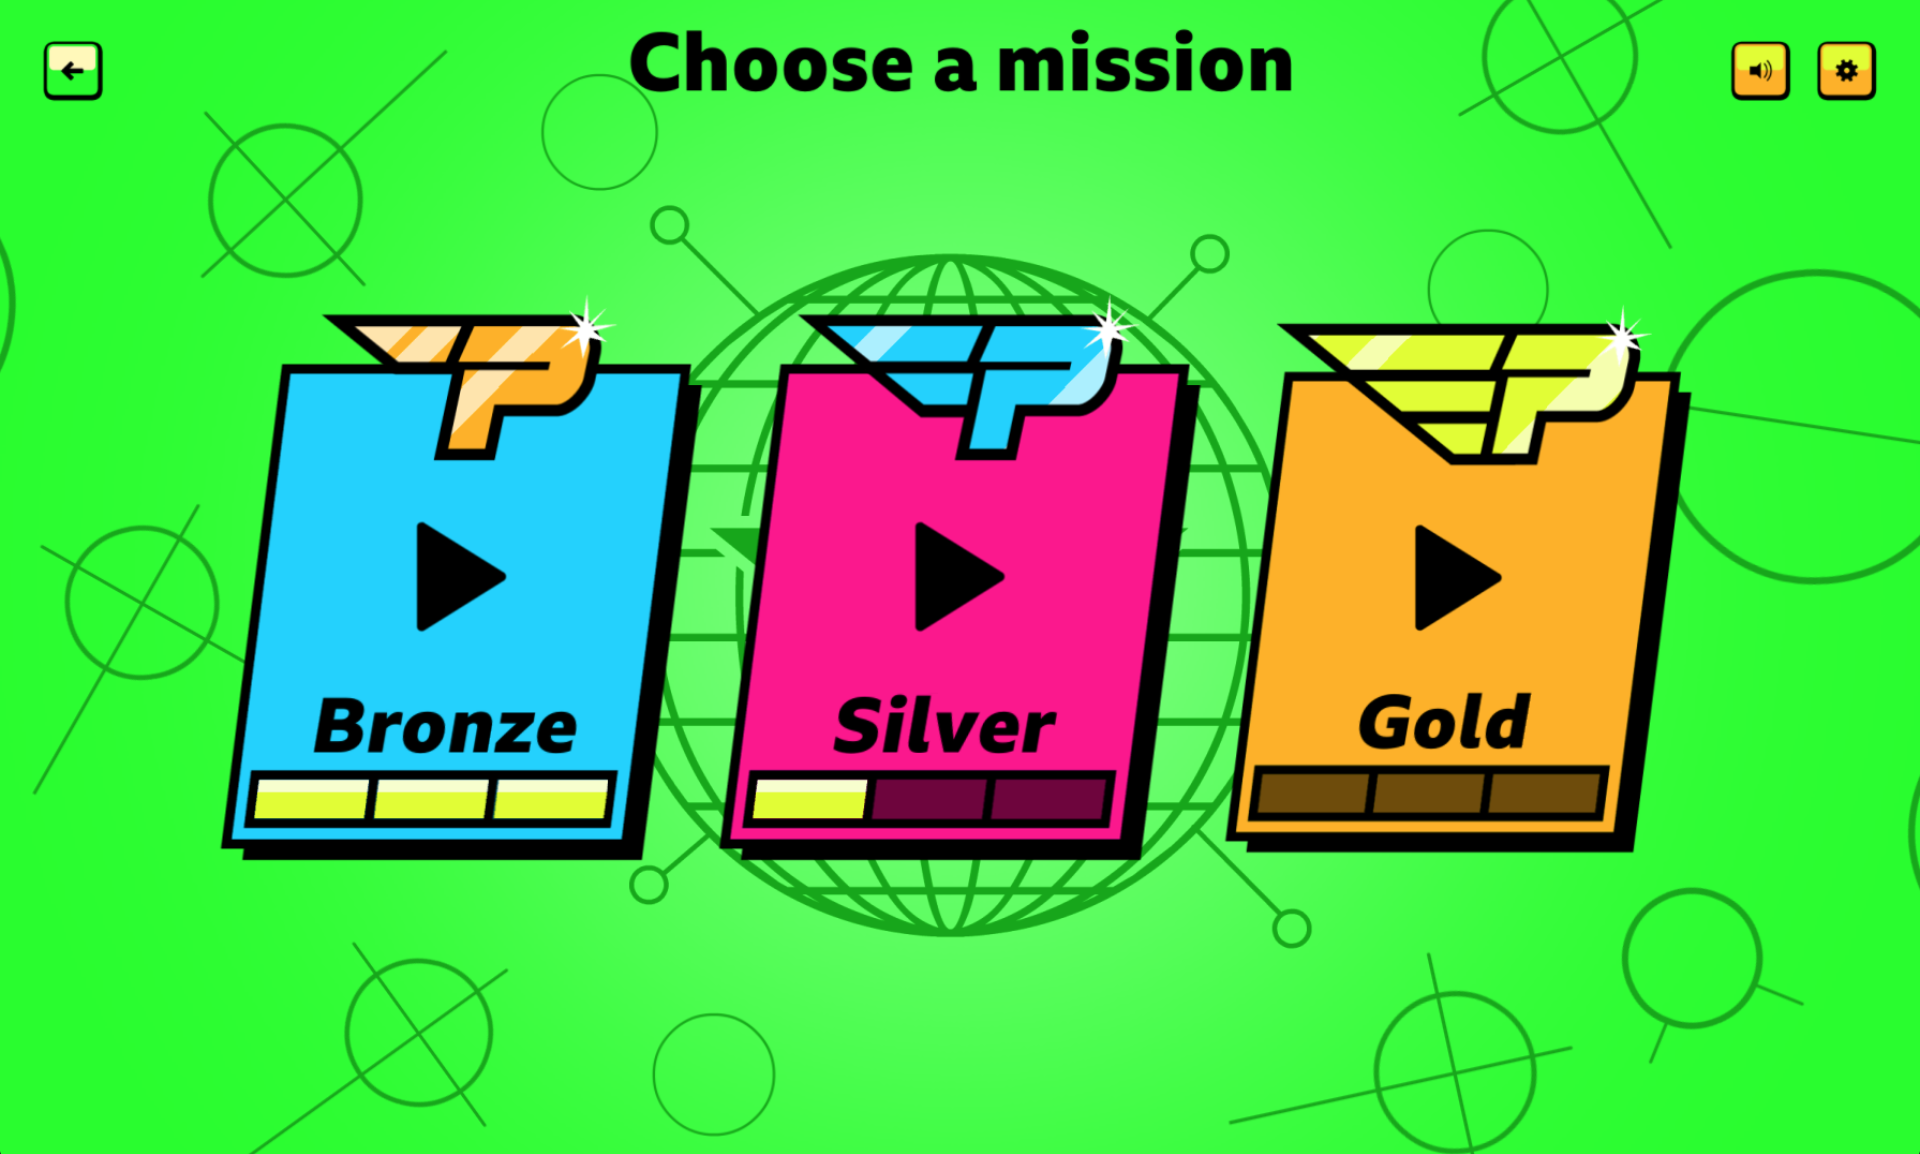 Choose a Mission